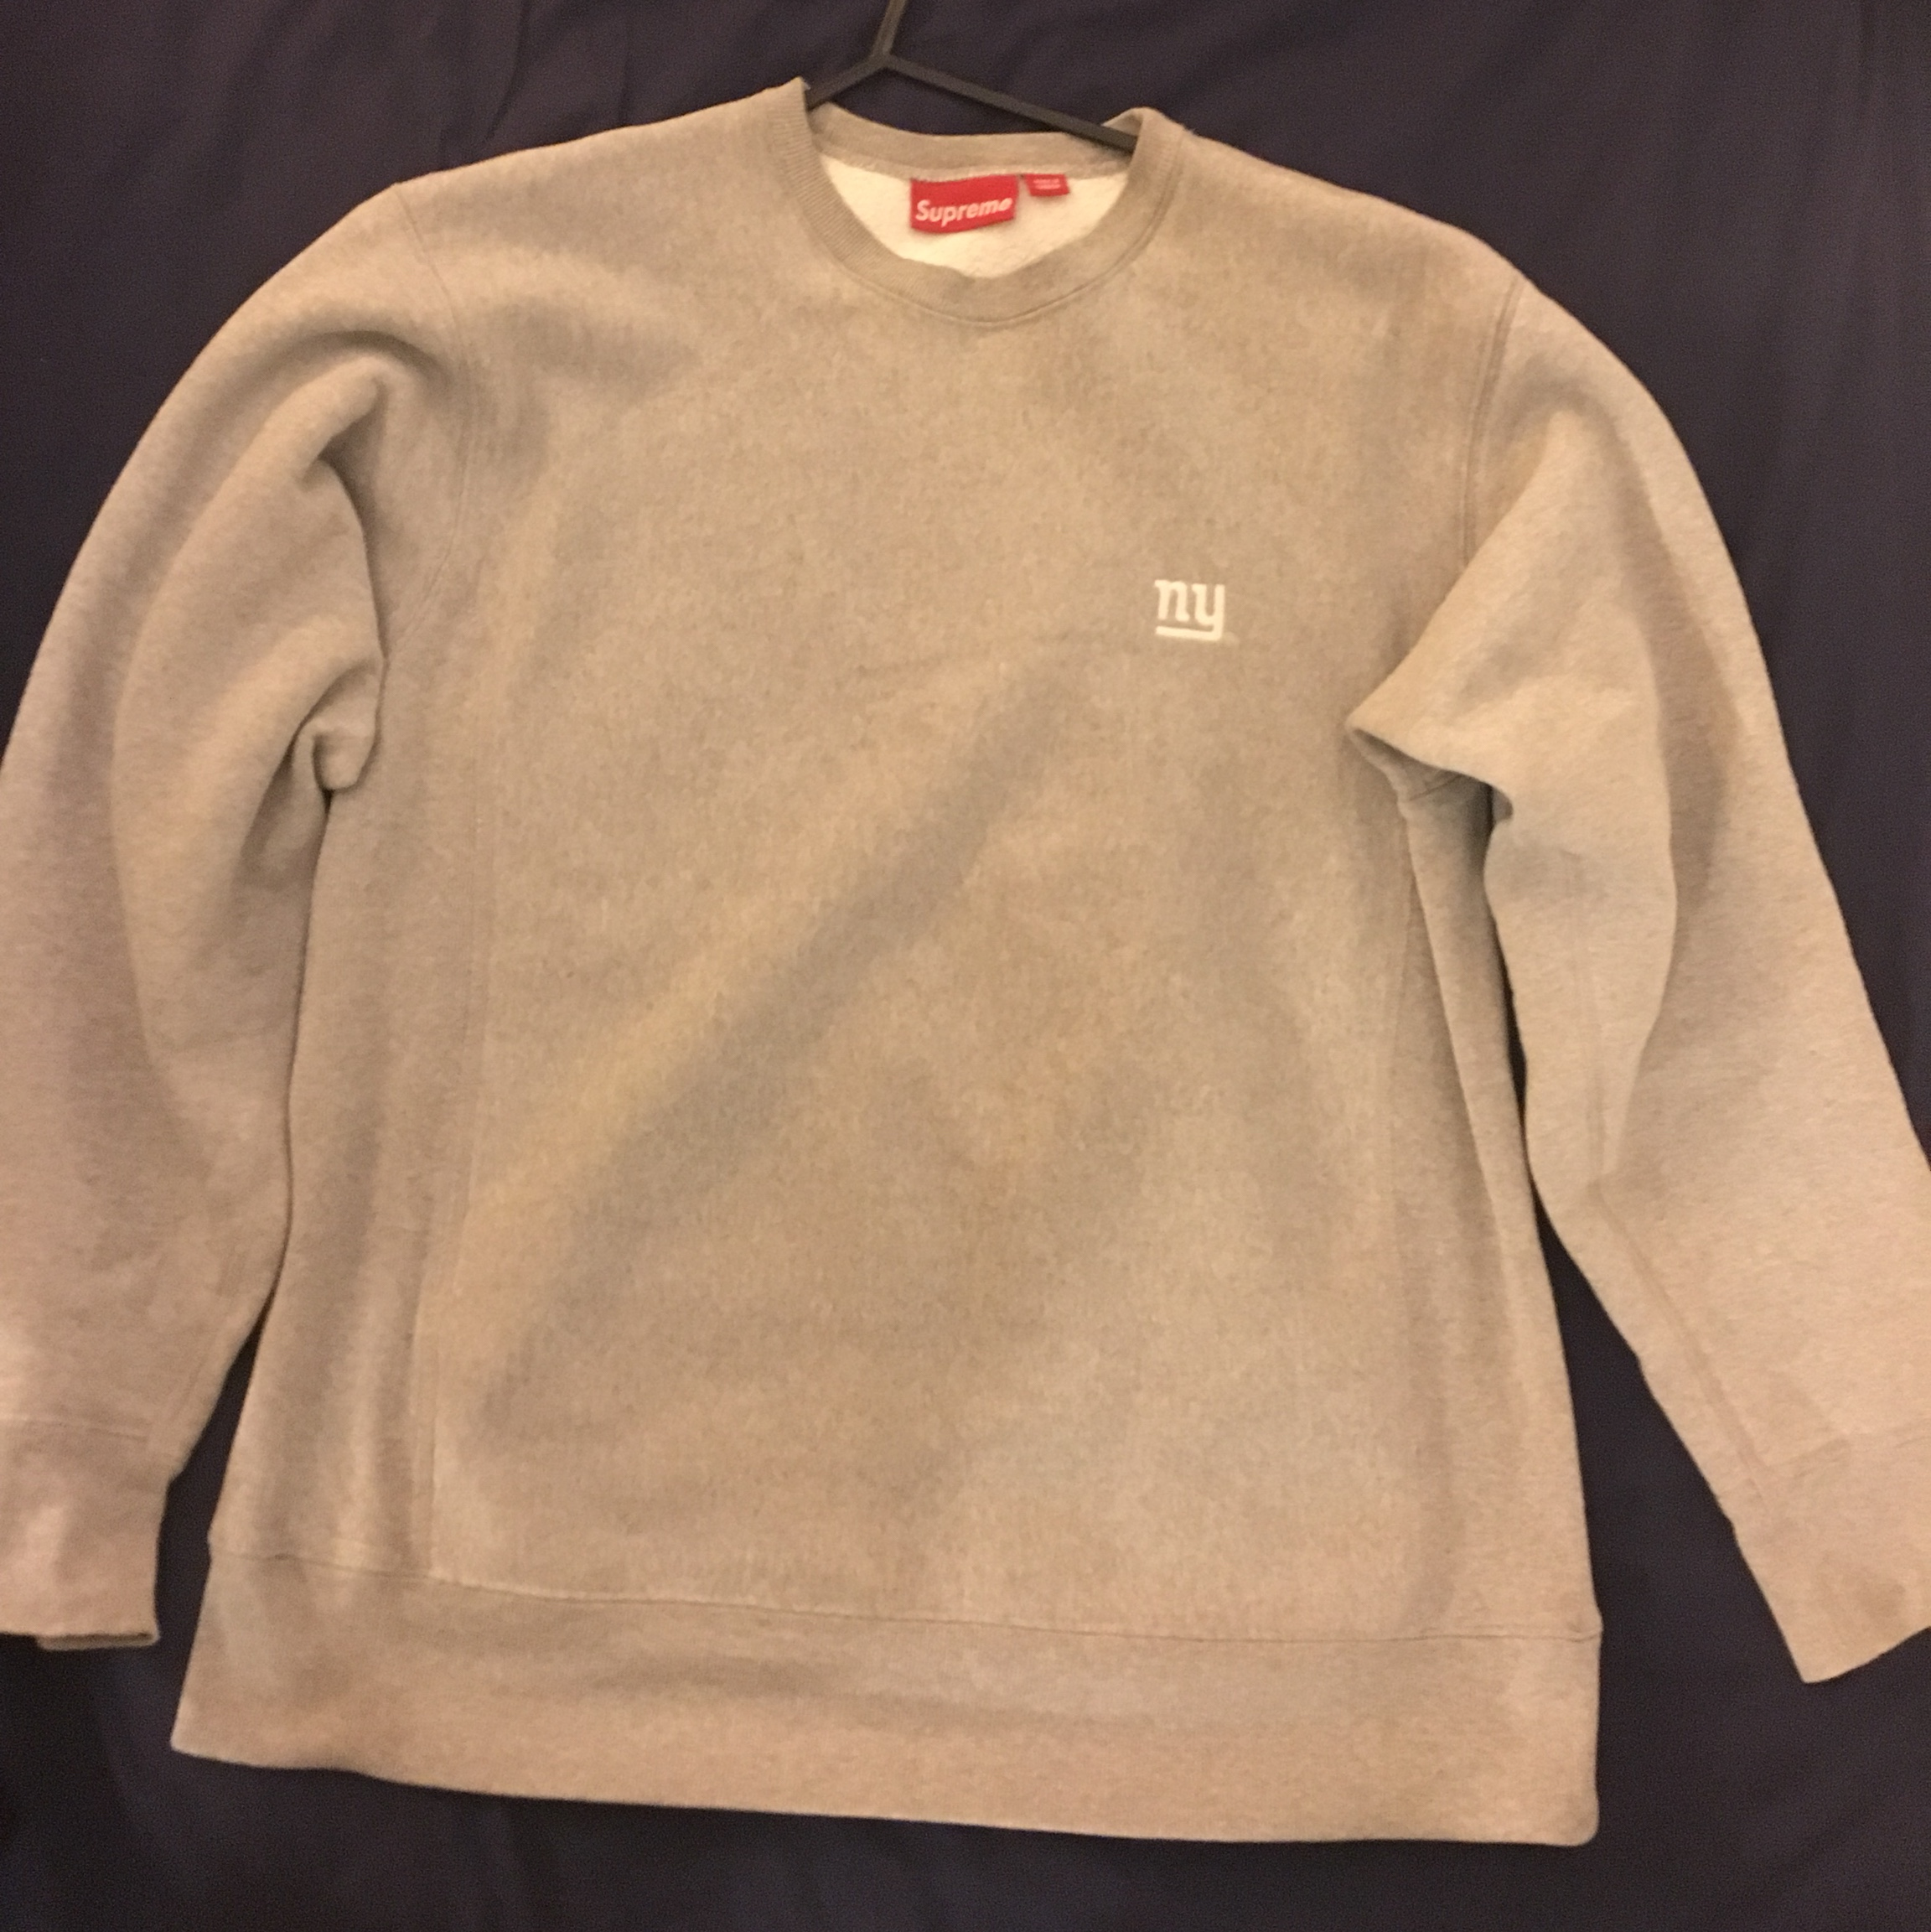 outlet store 618c0 86665 Vintage OG Supreme New York Giants from 2000 Sweater ...